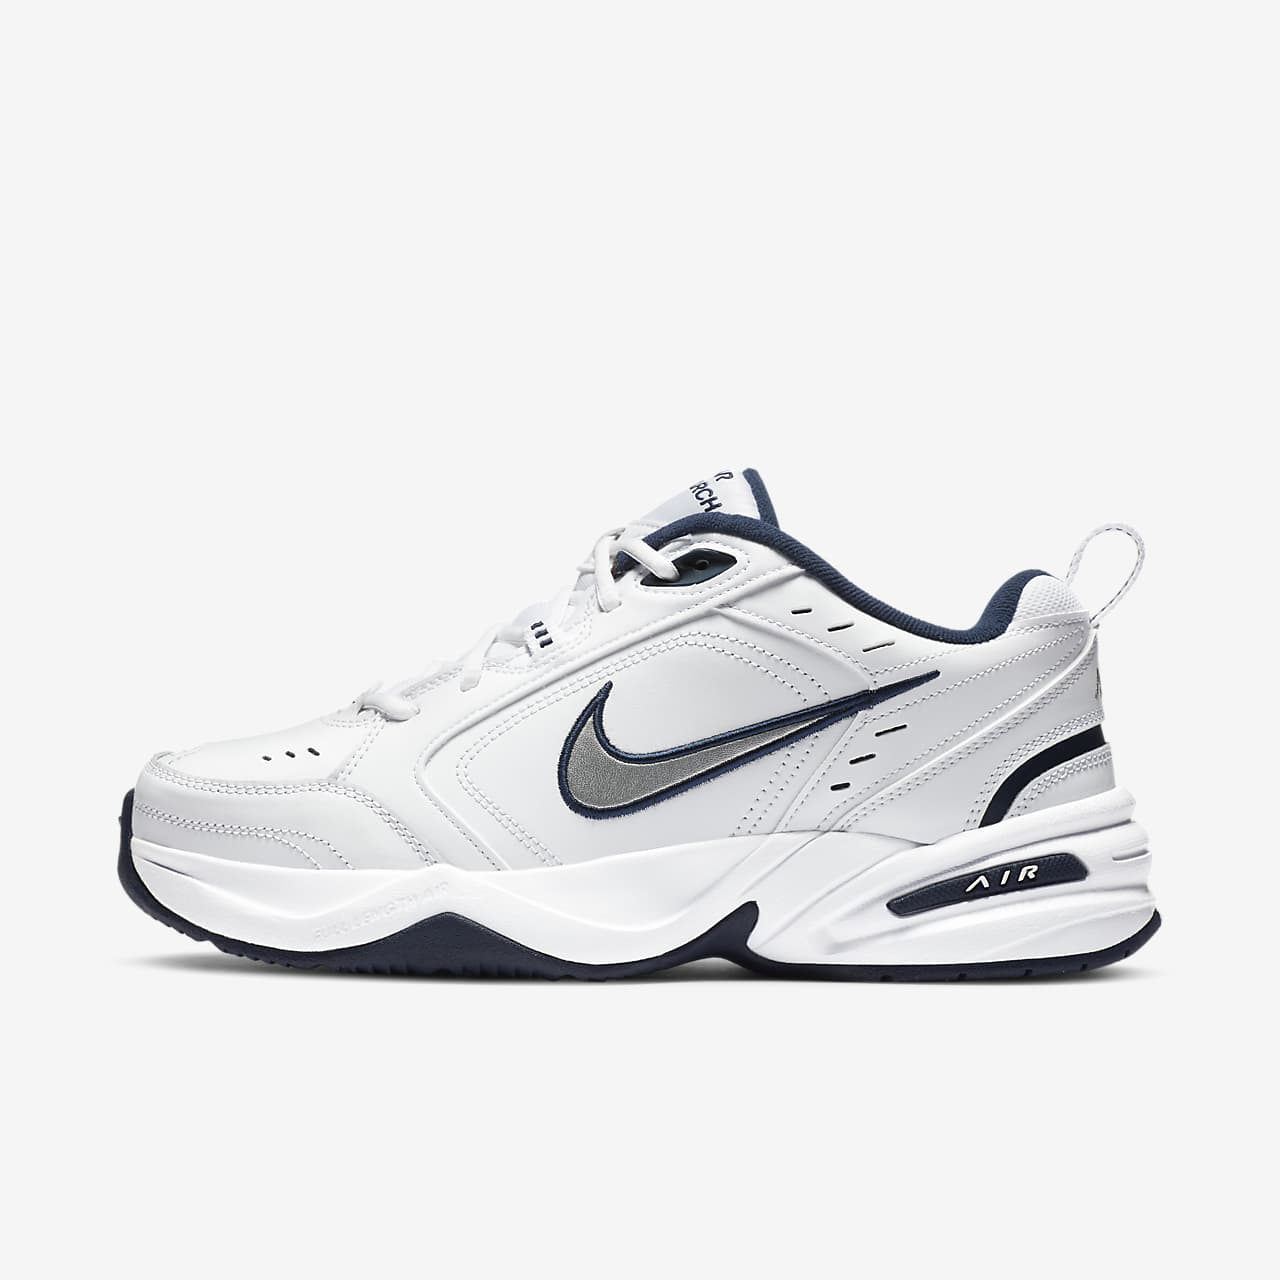 0cb184d9d01db Nike Air Monarch IV Unisex Training Shoe. Nike.com RO